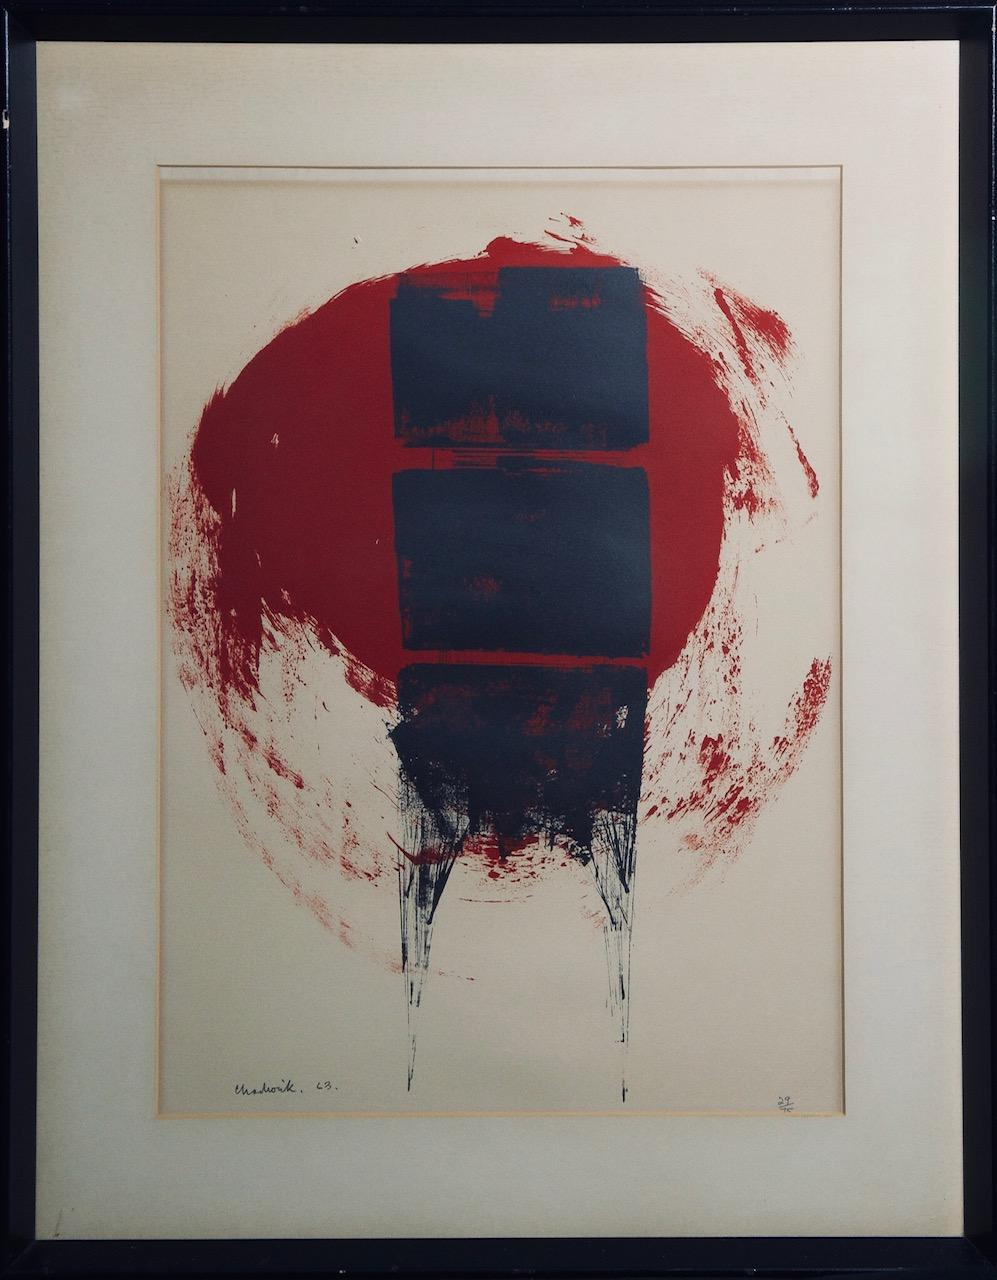 Composition of Red and Black-Limited Edition Print, Signed and Dated by Artist.